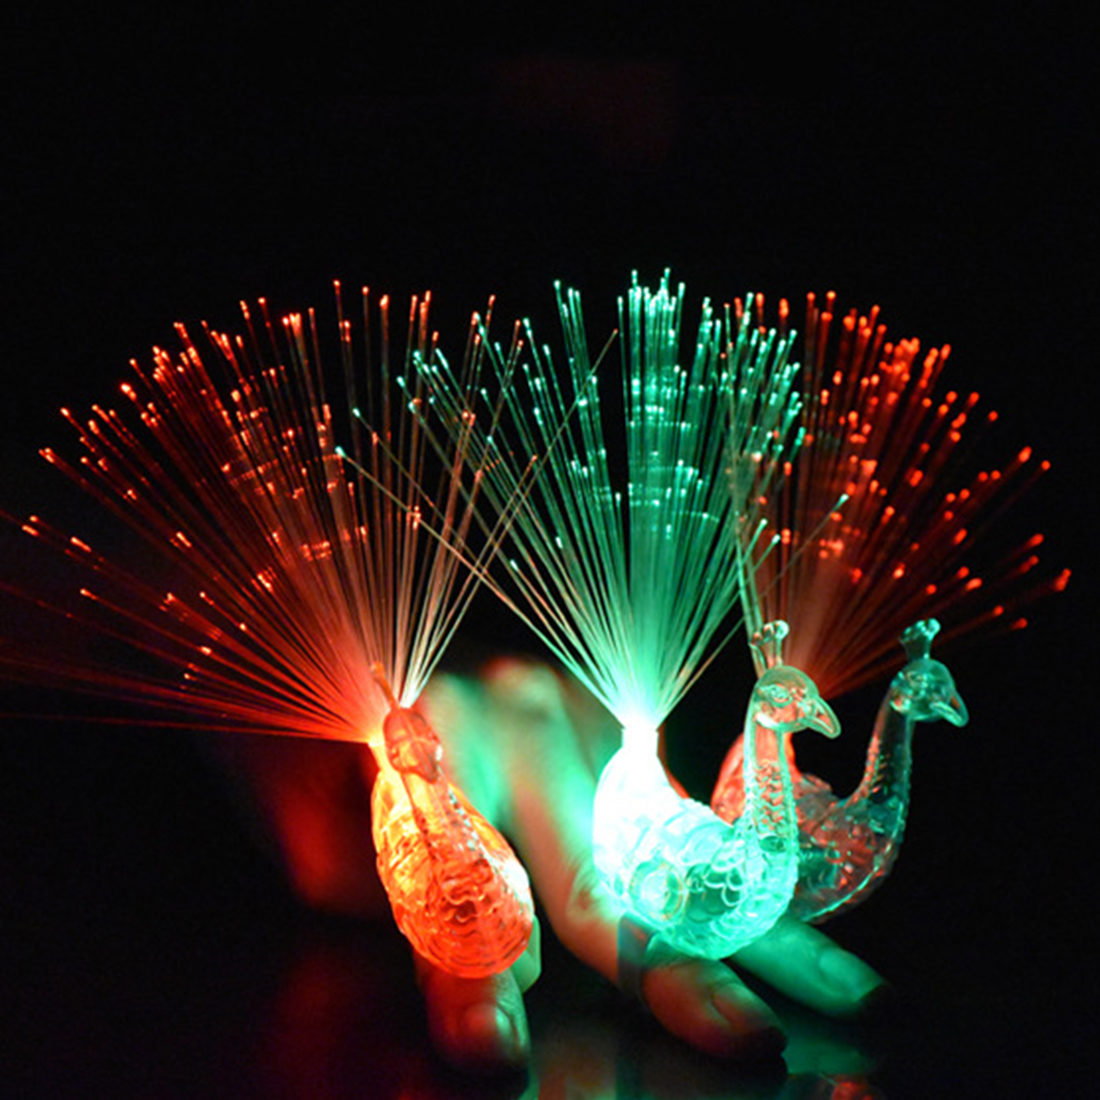 LED Light-up Rings Peacock Finger Light Colorful Party Gadgets Kids Intelligent Toy for Party Gift Color Random